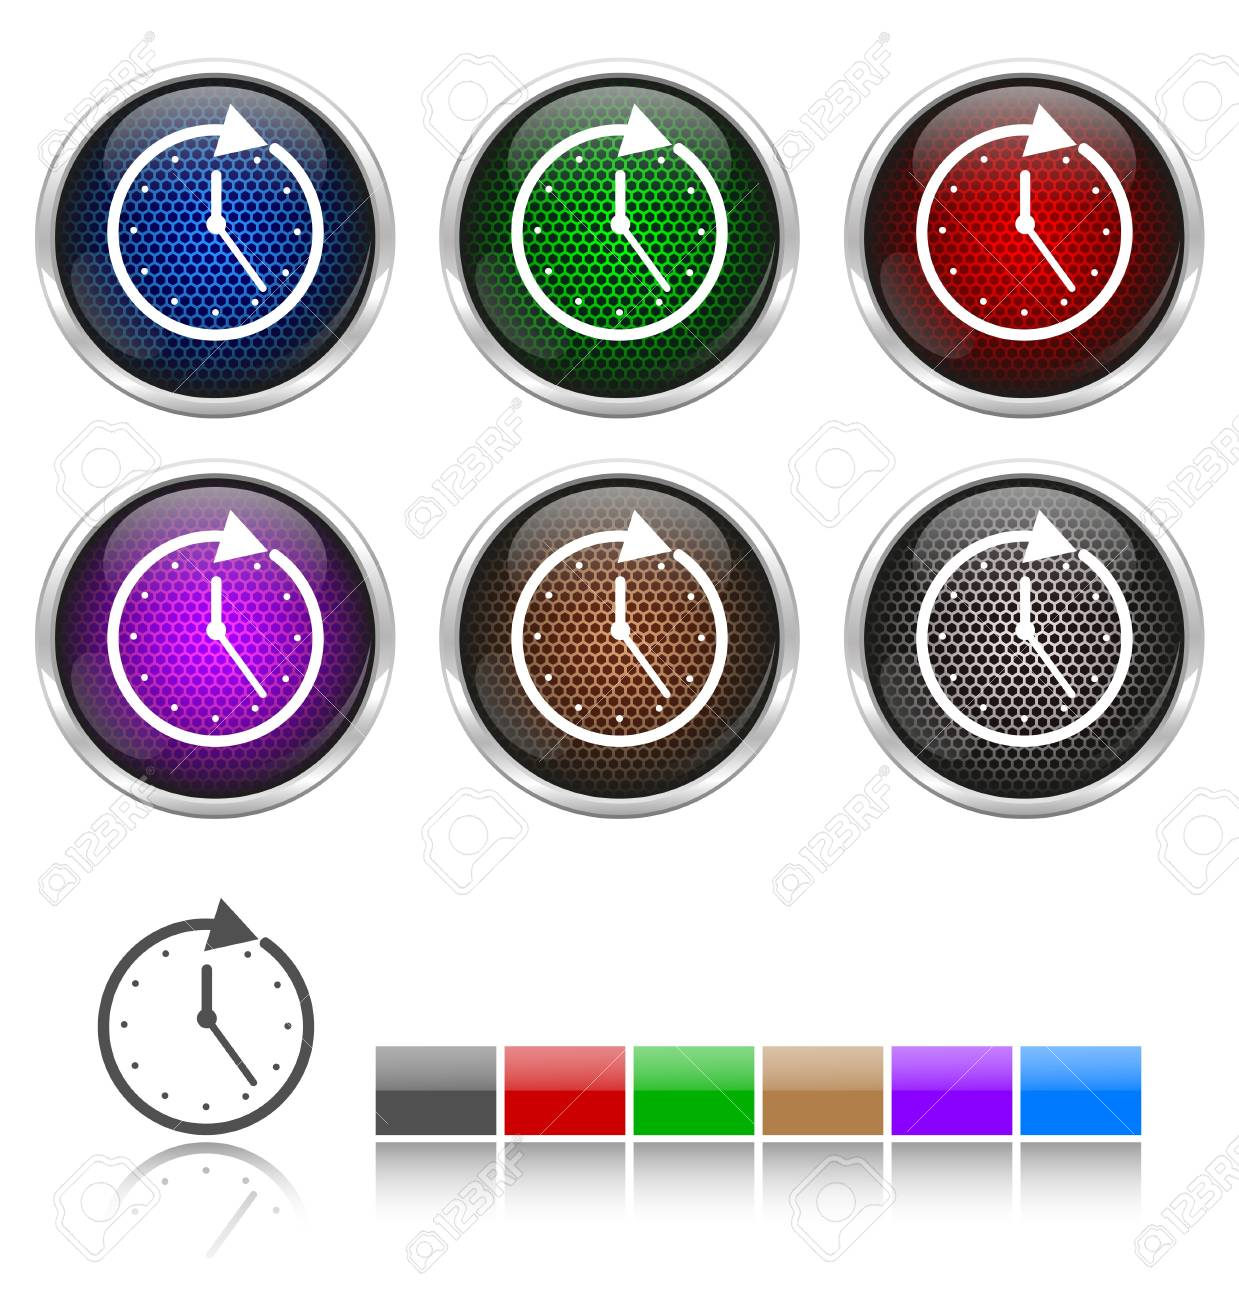 Colorful honeycomb watch icon Stock Vector - 17316330